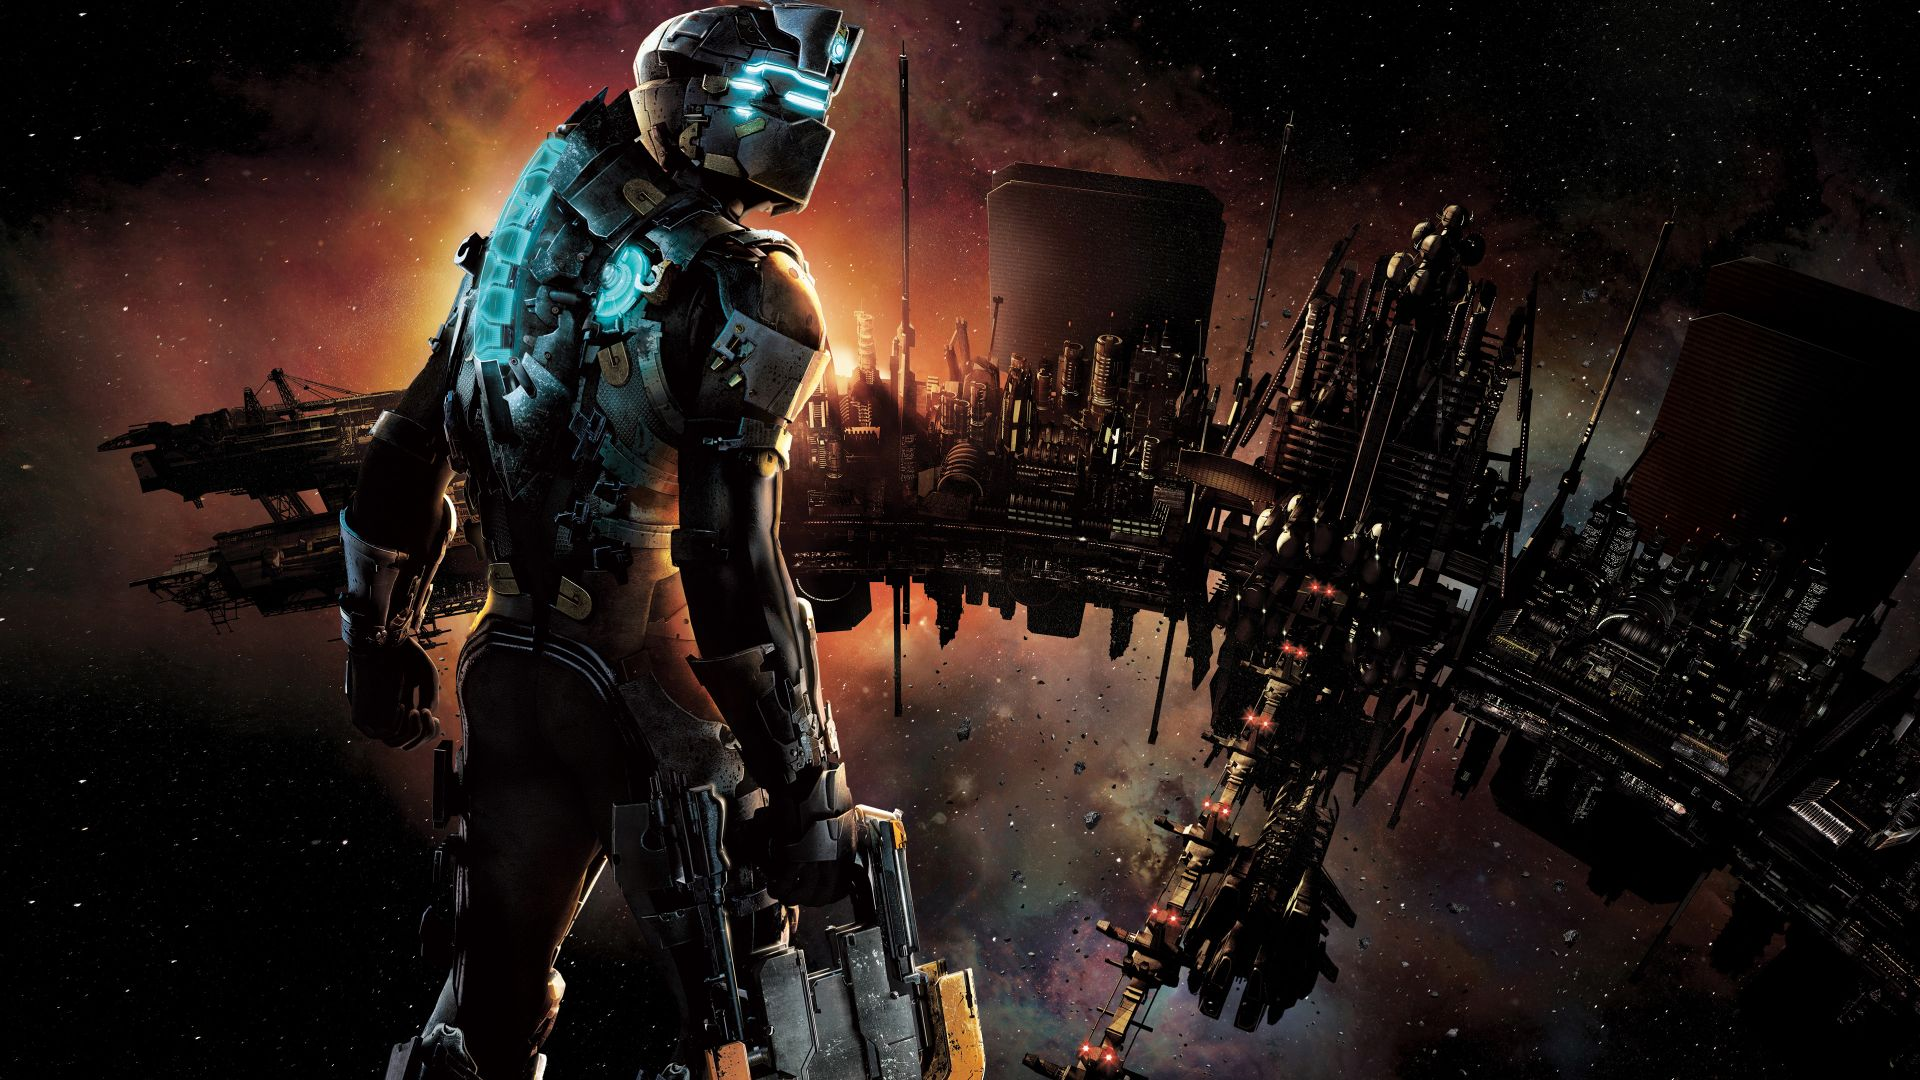 Dead Space 2 Wallpapers Video Game Hq Dead Space 2 Pictures 4k